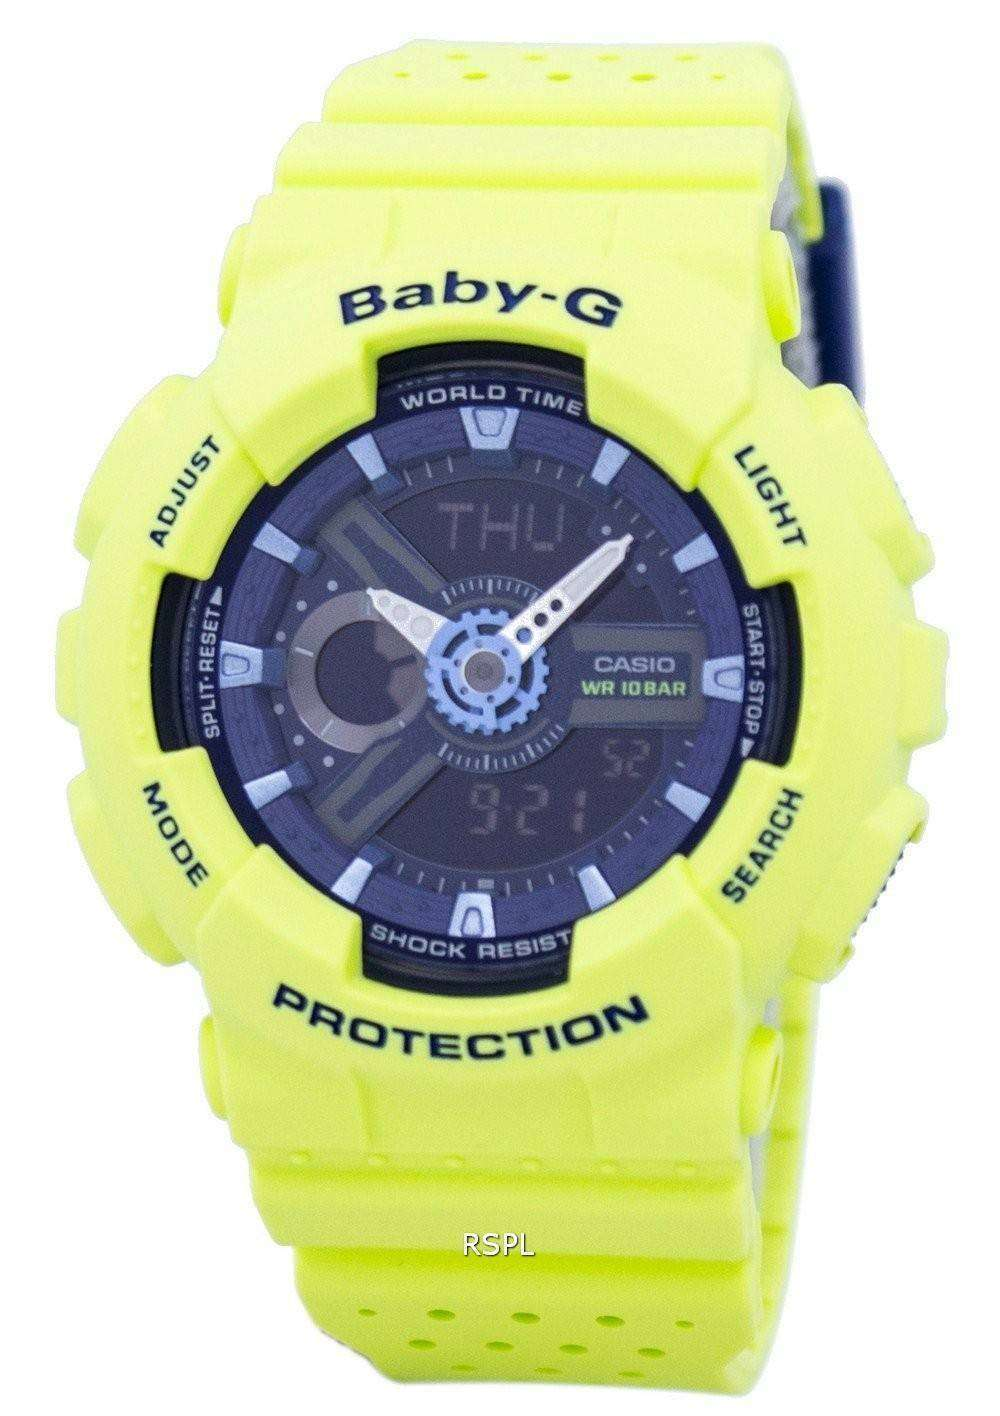 cfad996afa785 Casio Baby-G Shock Resistant World Time Analog Digital BA-110PP-3A Women s